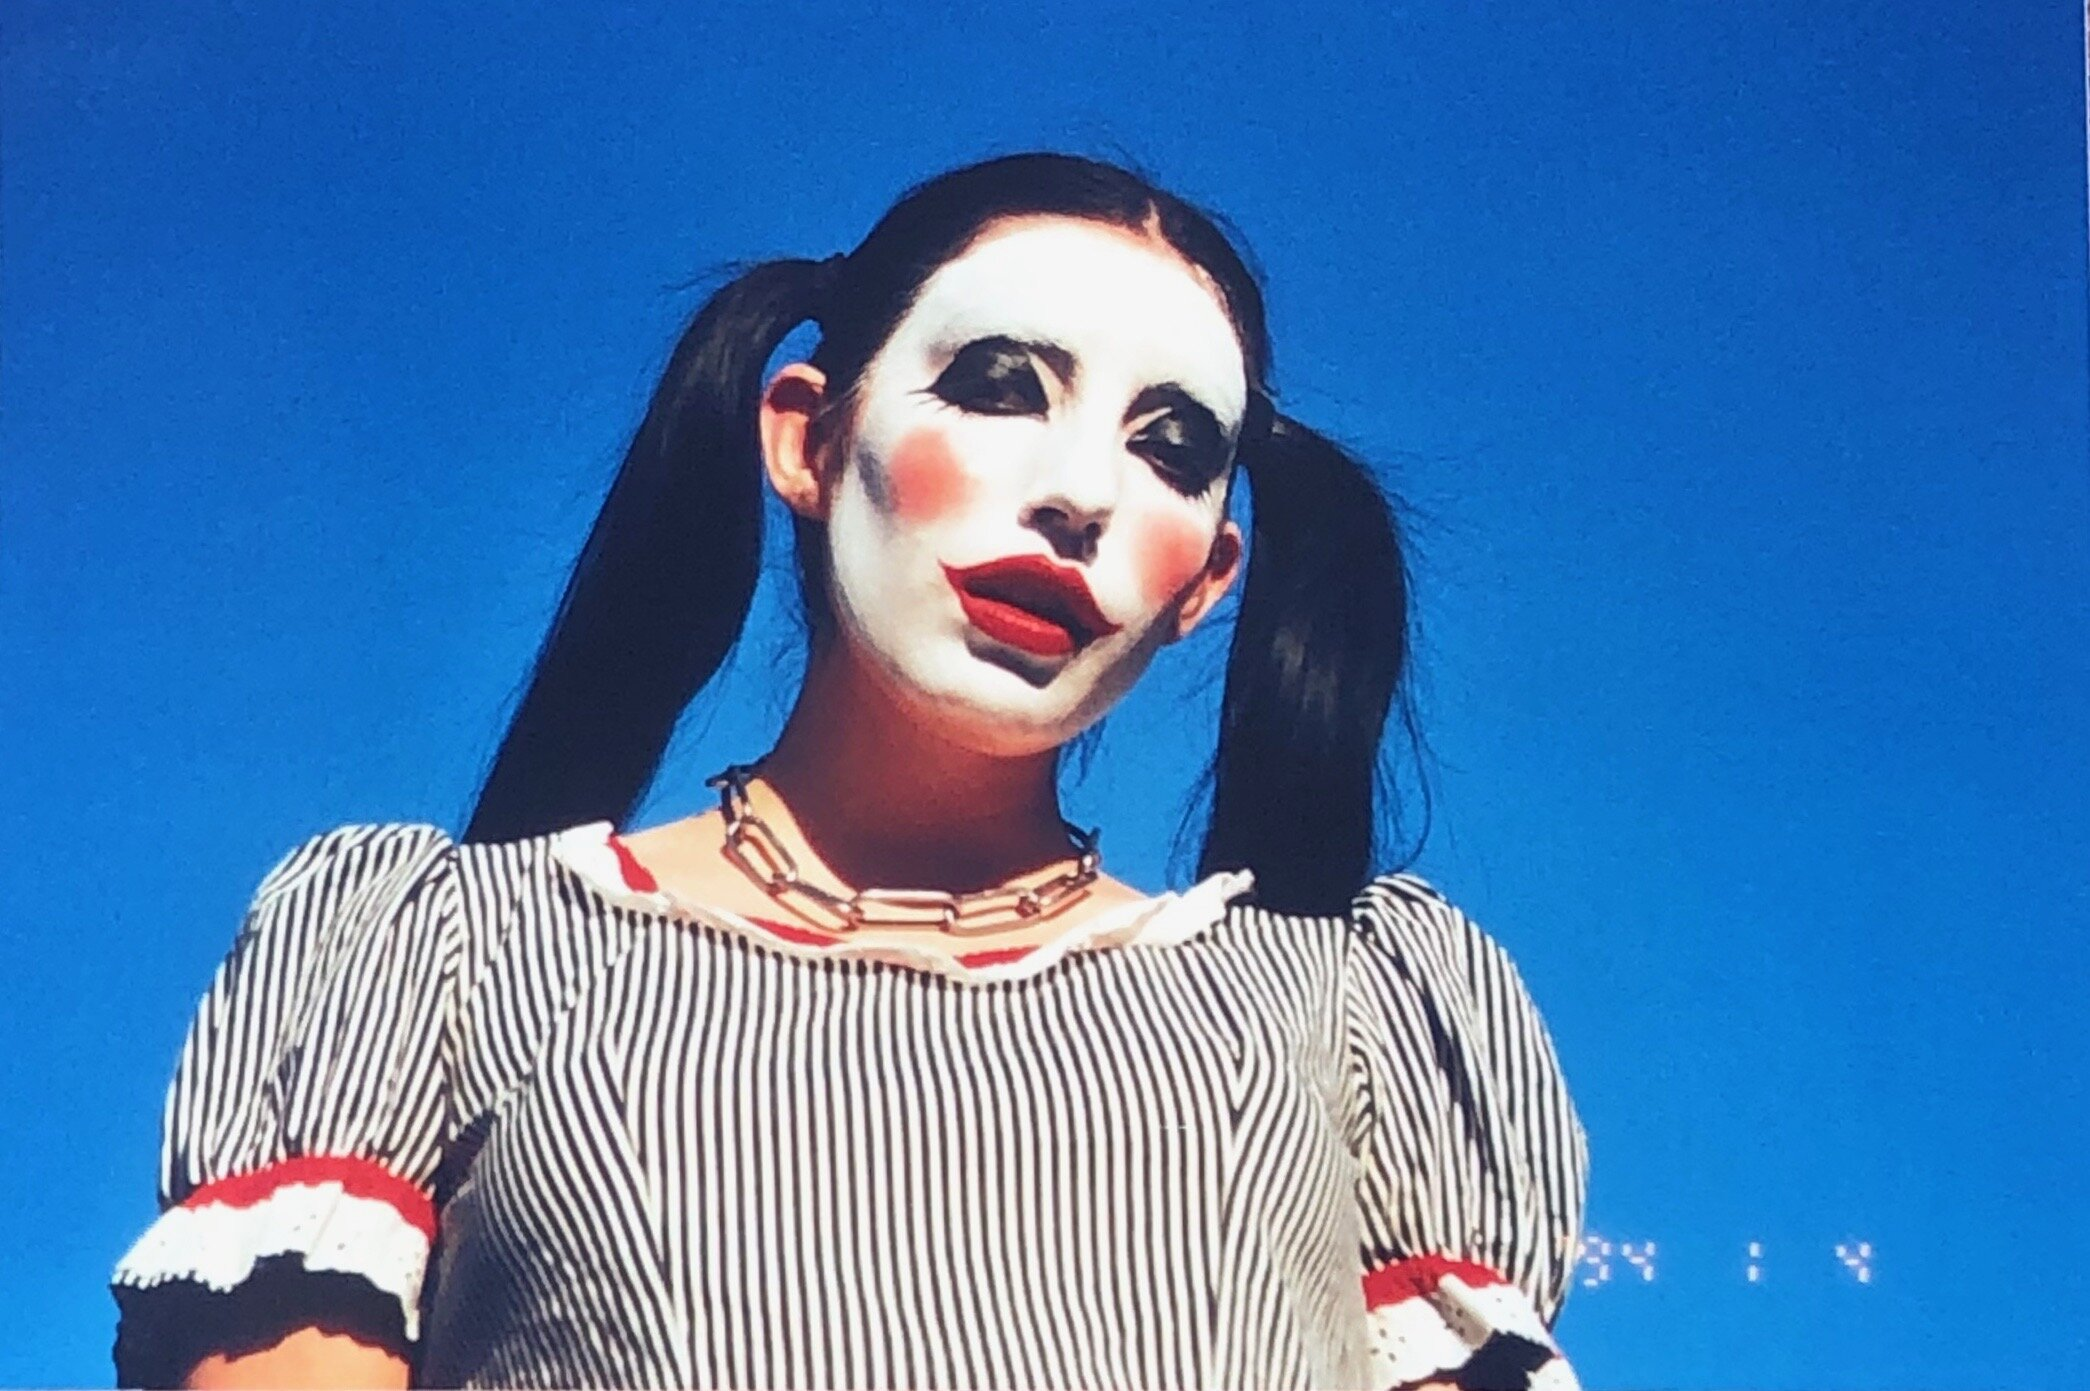 Romy as a mime, photographed by Maytal